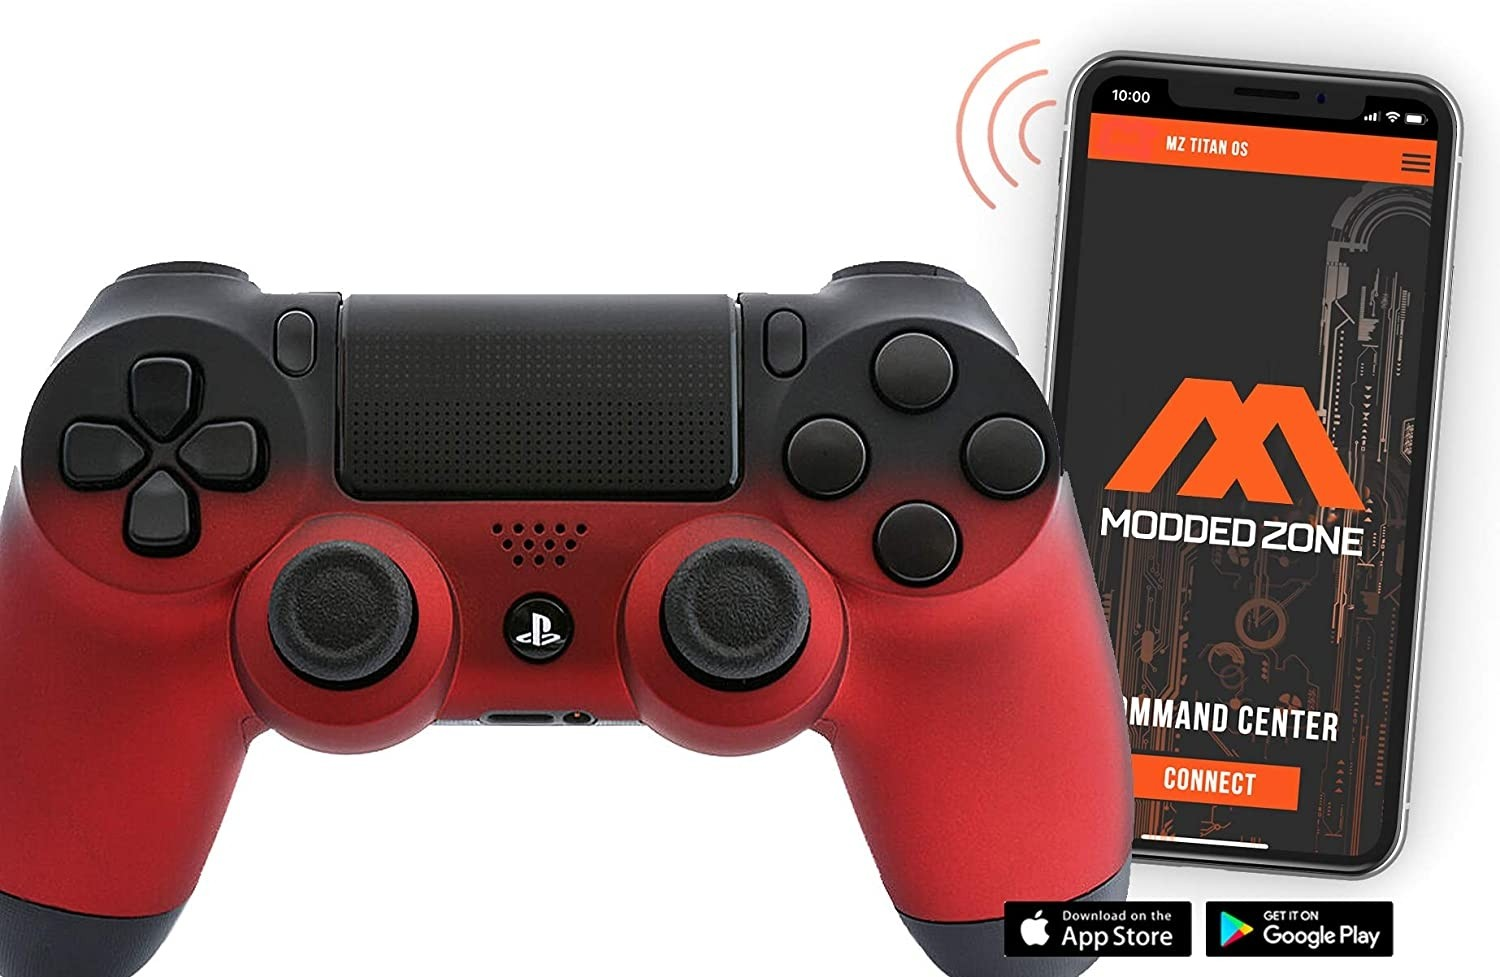 Red Shadow Smart PS4 PRO Rapid Fire Custom MODDED Controller